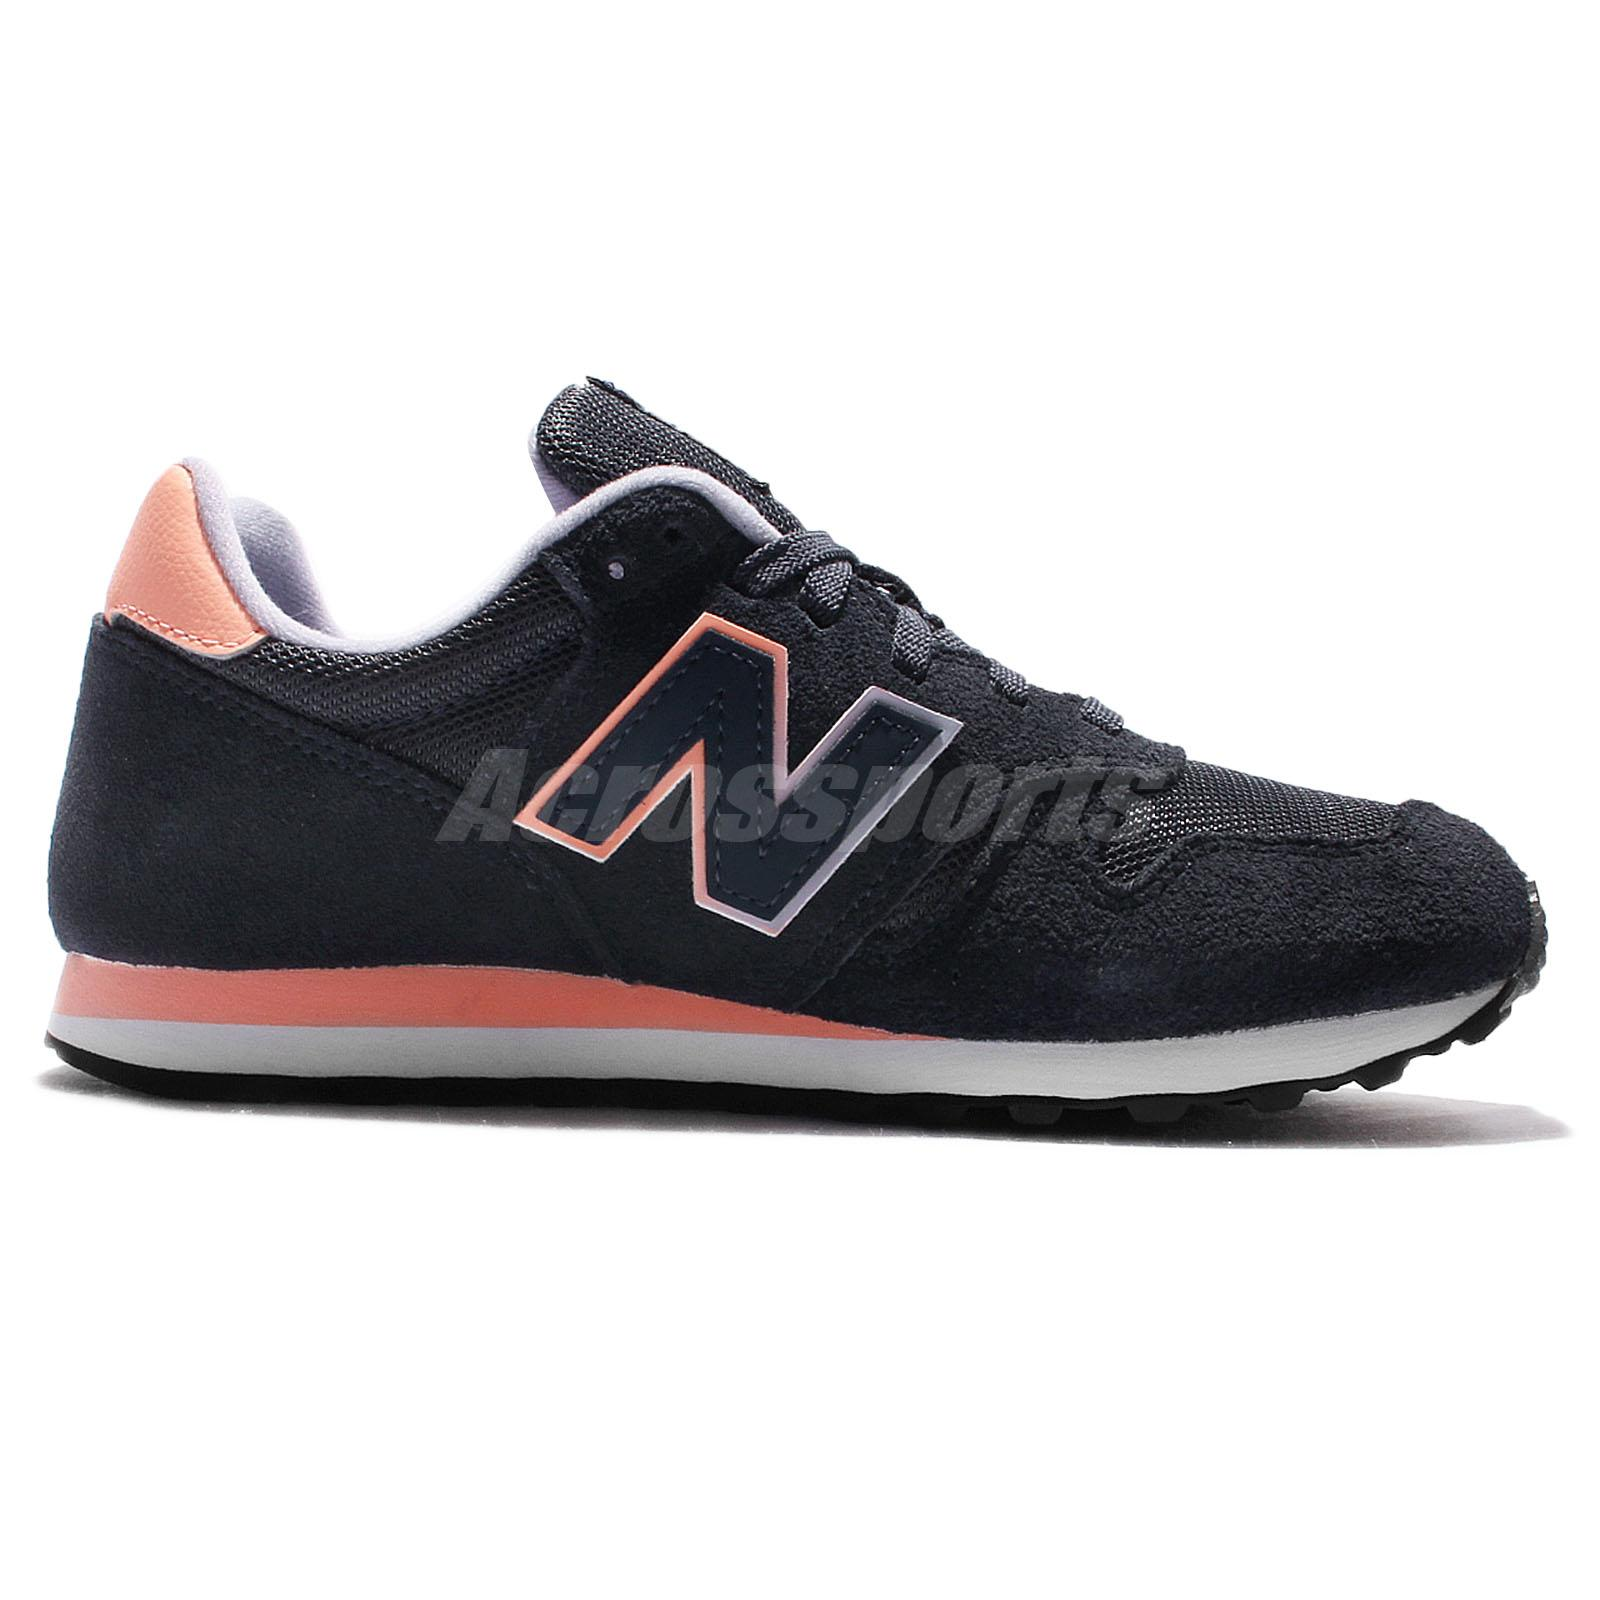 Descontar Últimas Colecciones Sneakers New Balance Art. W530eaa Clásico Barato gb8NdE3